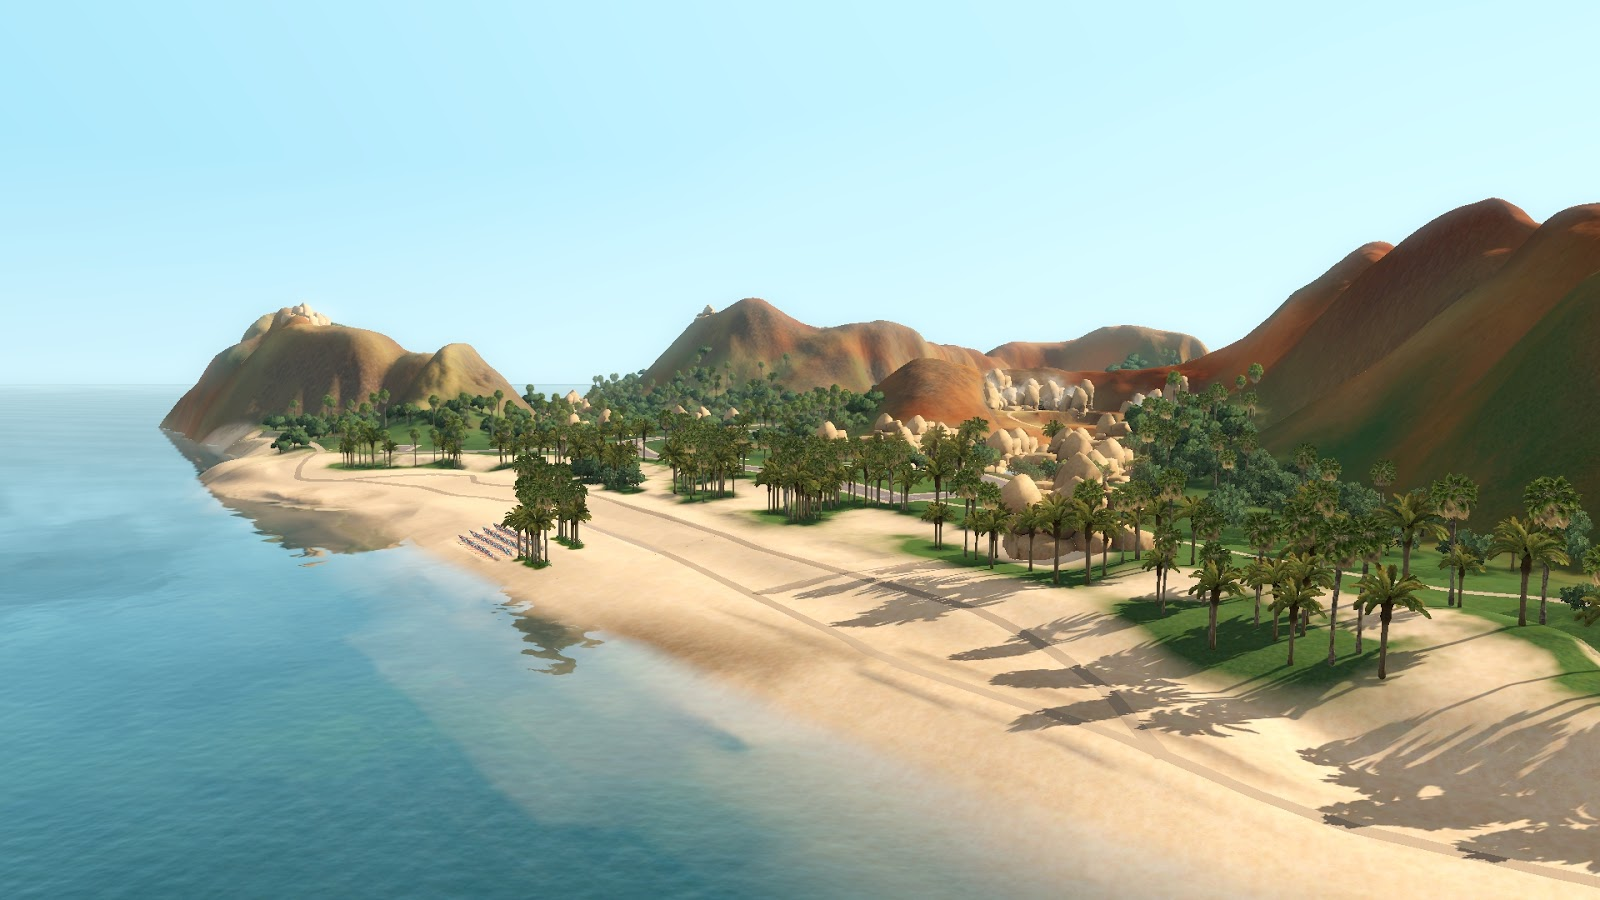 Cink's Sims : Desert Streets - download